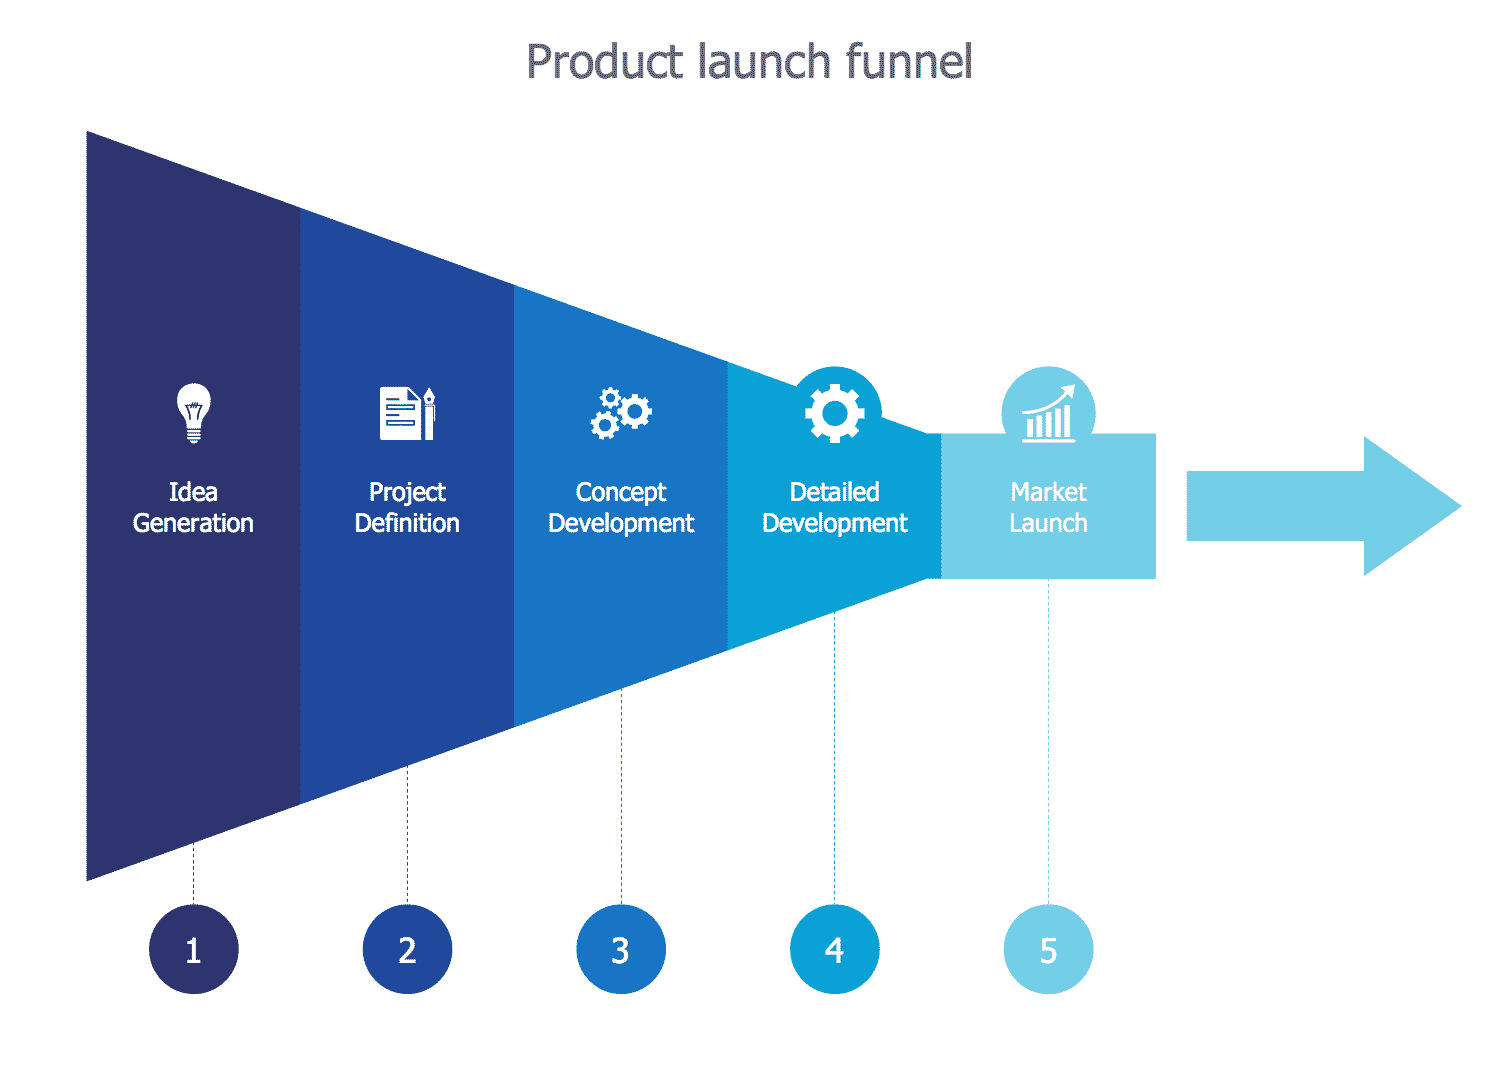 Product Launch Funnel templates